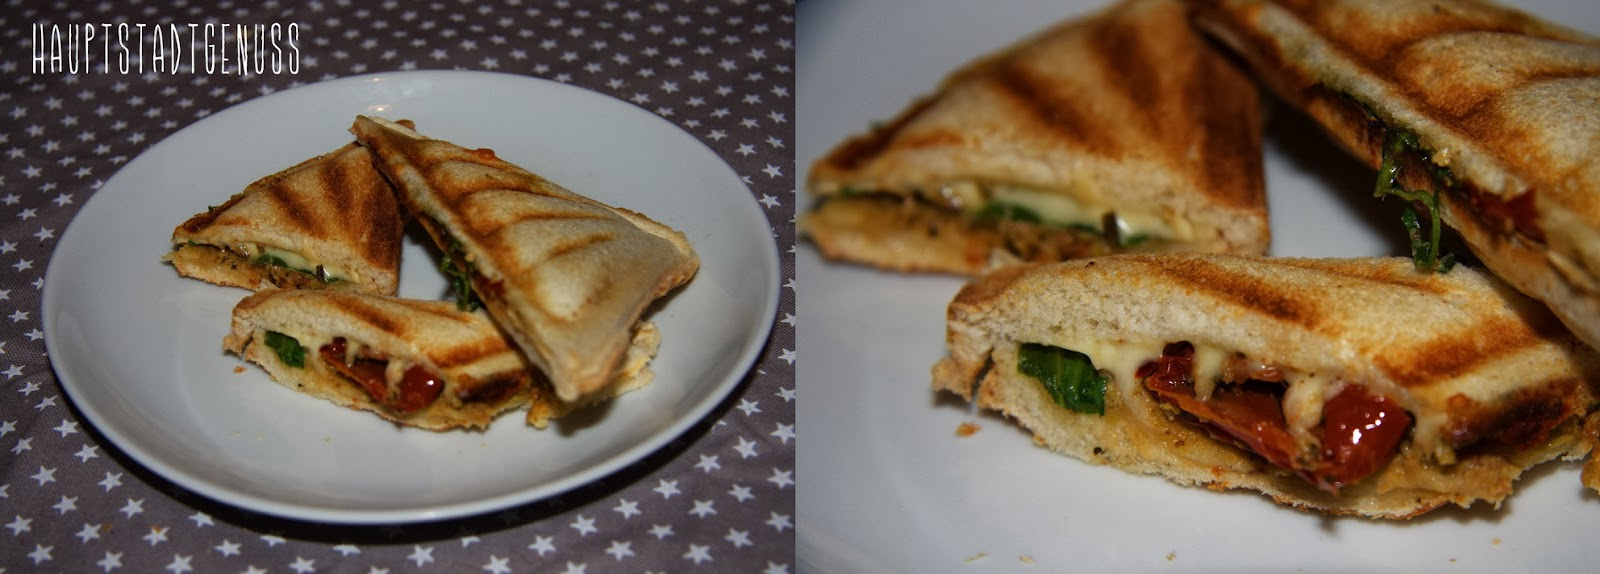 hauptstadtgenuss golden toast american sandwich im test. Black Bedroom Furniture Sets. Home Design Ideas